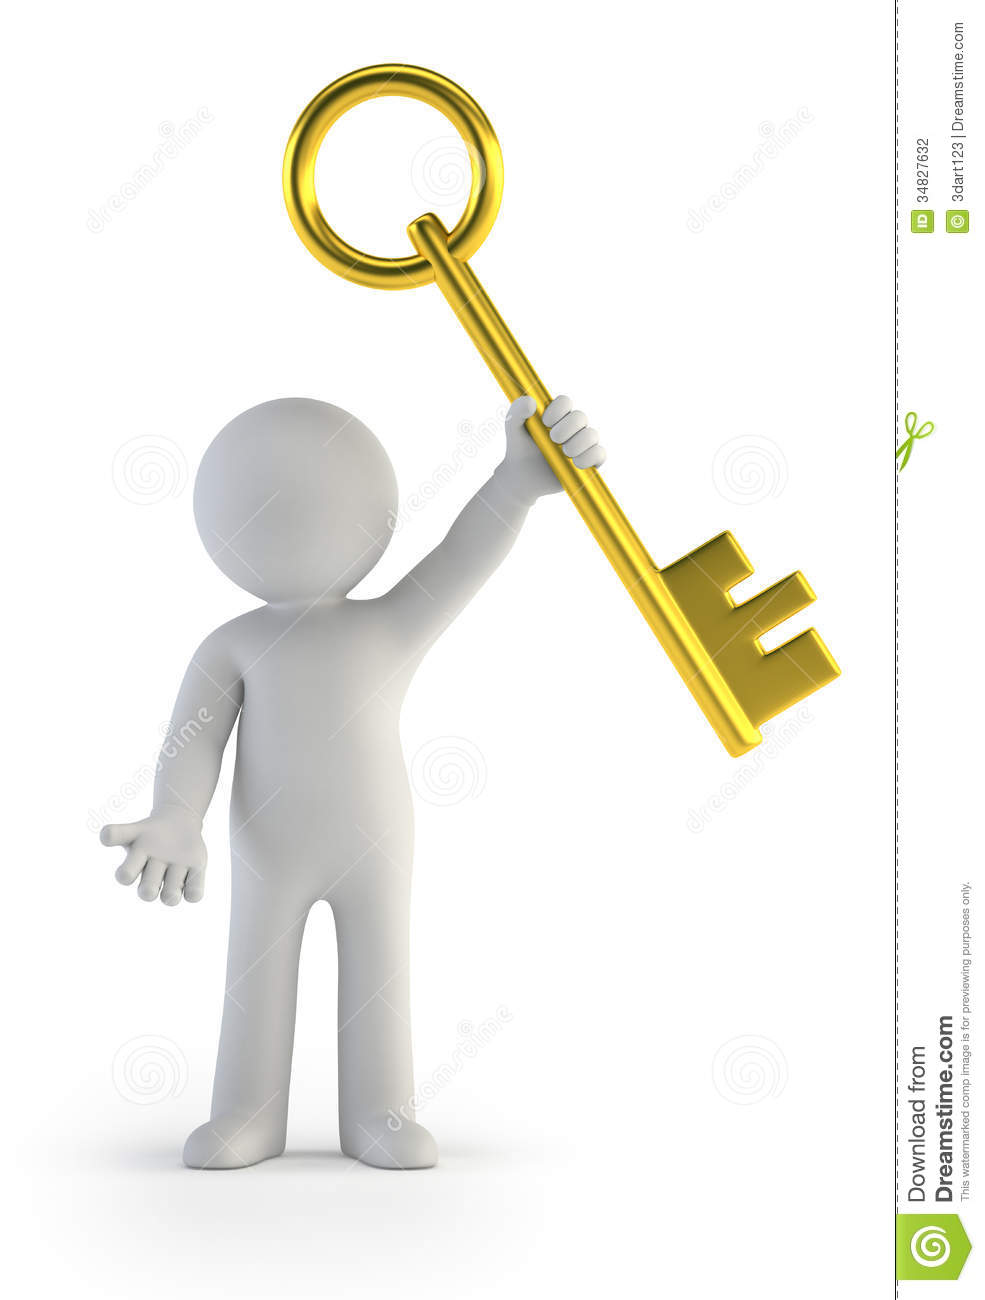 Stock Photography D Small People Golden Key Little Man Holding Isolated White Background Image34827632 on Small House Plan